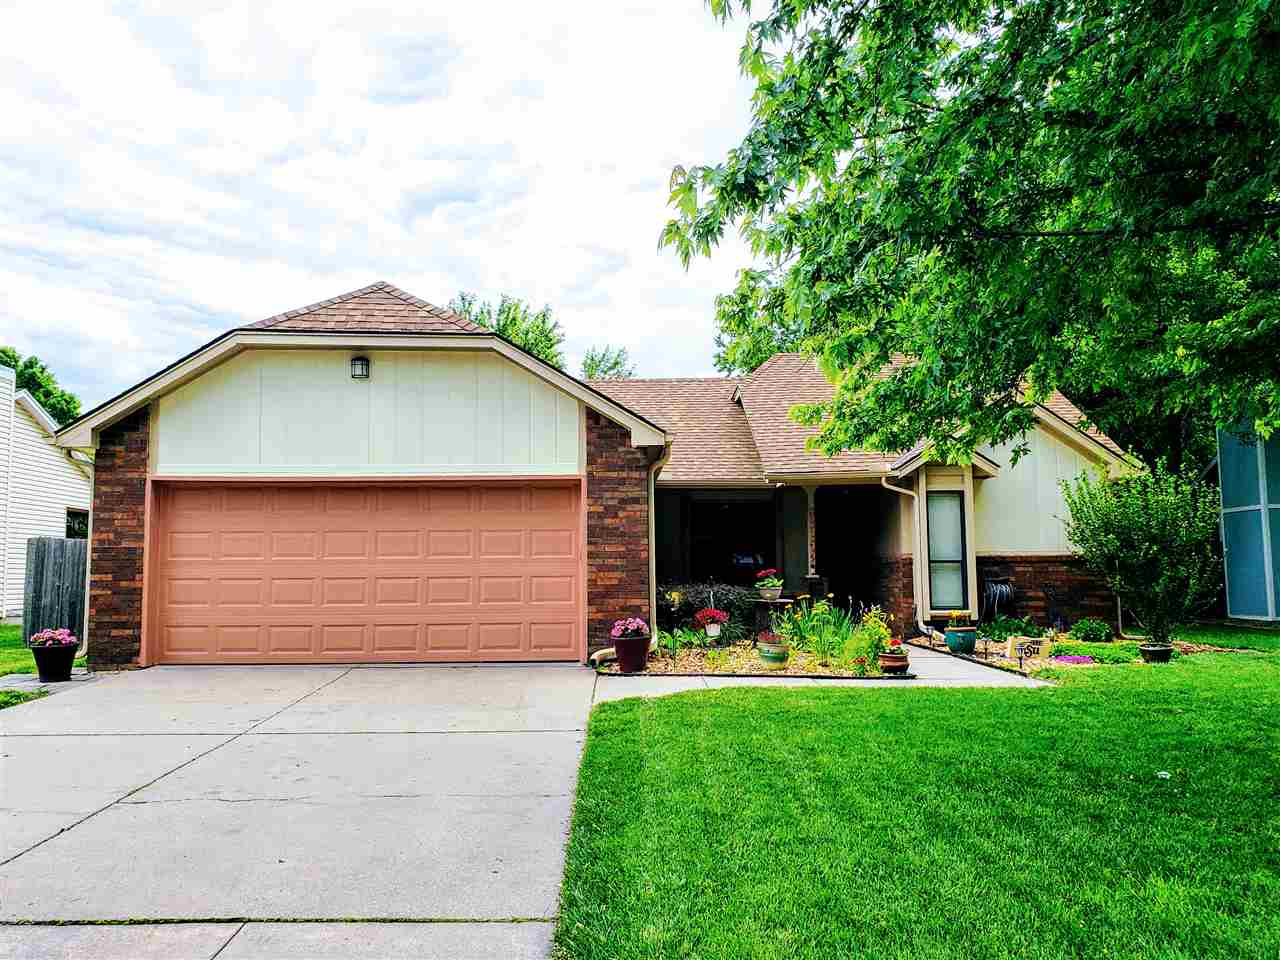 Welcome home to this charming 3 bedroom, 2 bath home in the desirable Sherwood Glenn Addition.  This